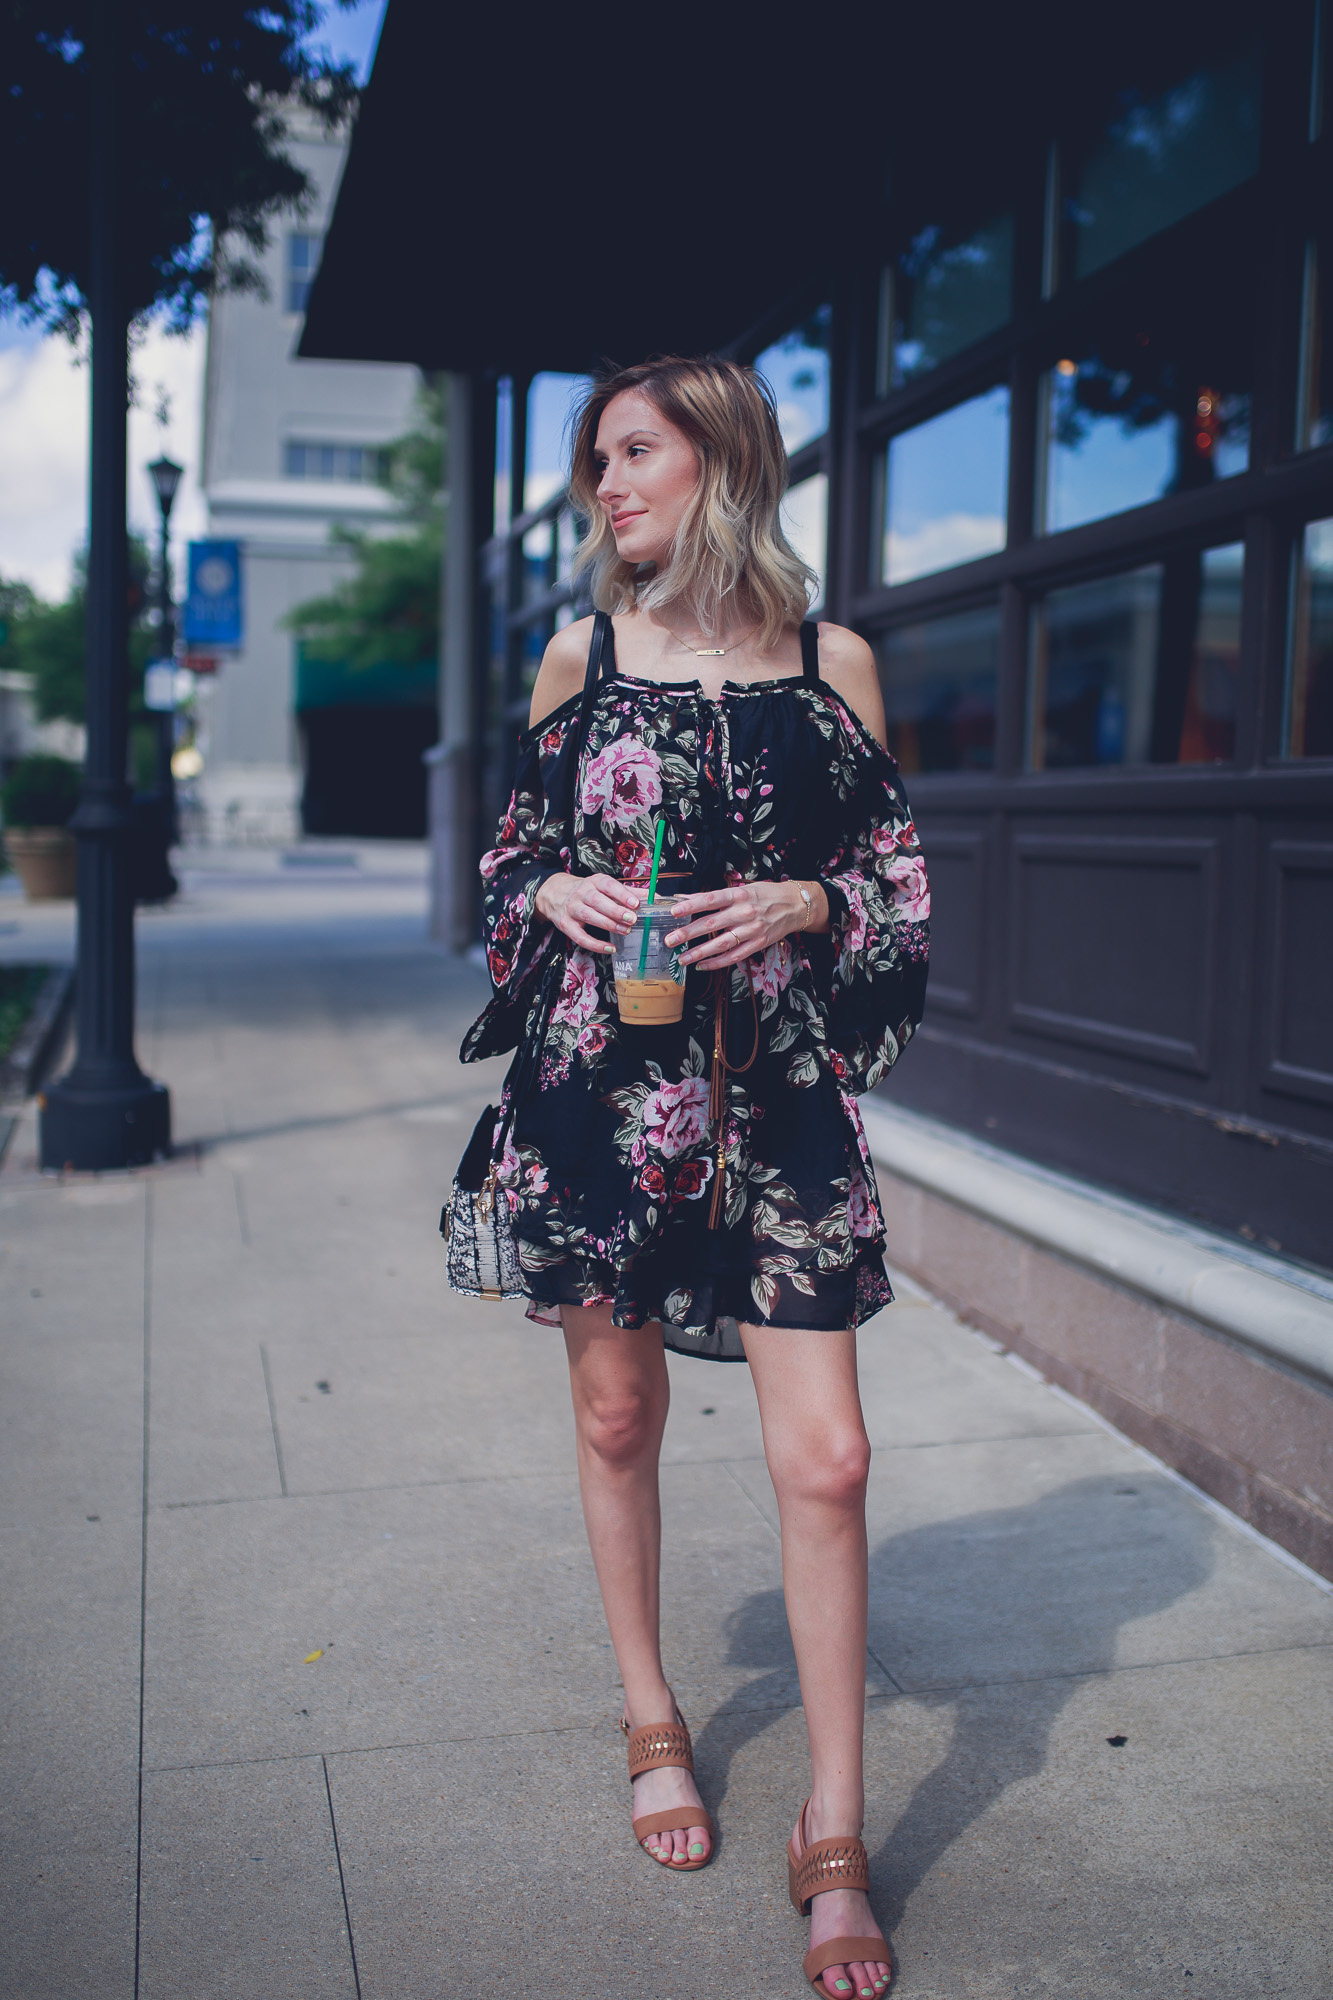 Fashion, lifestyle, and beauty blogger / vlogger Jessica Linn from Linn Style wearing an off the shoulder black floral mid thigh dress with Matisse footwear heels, a coach purse, and a Mamma Bear necklace from CY Design Studio